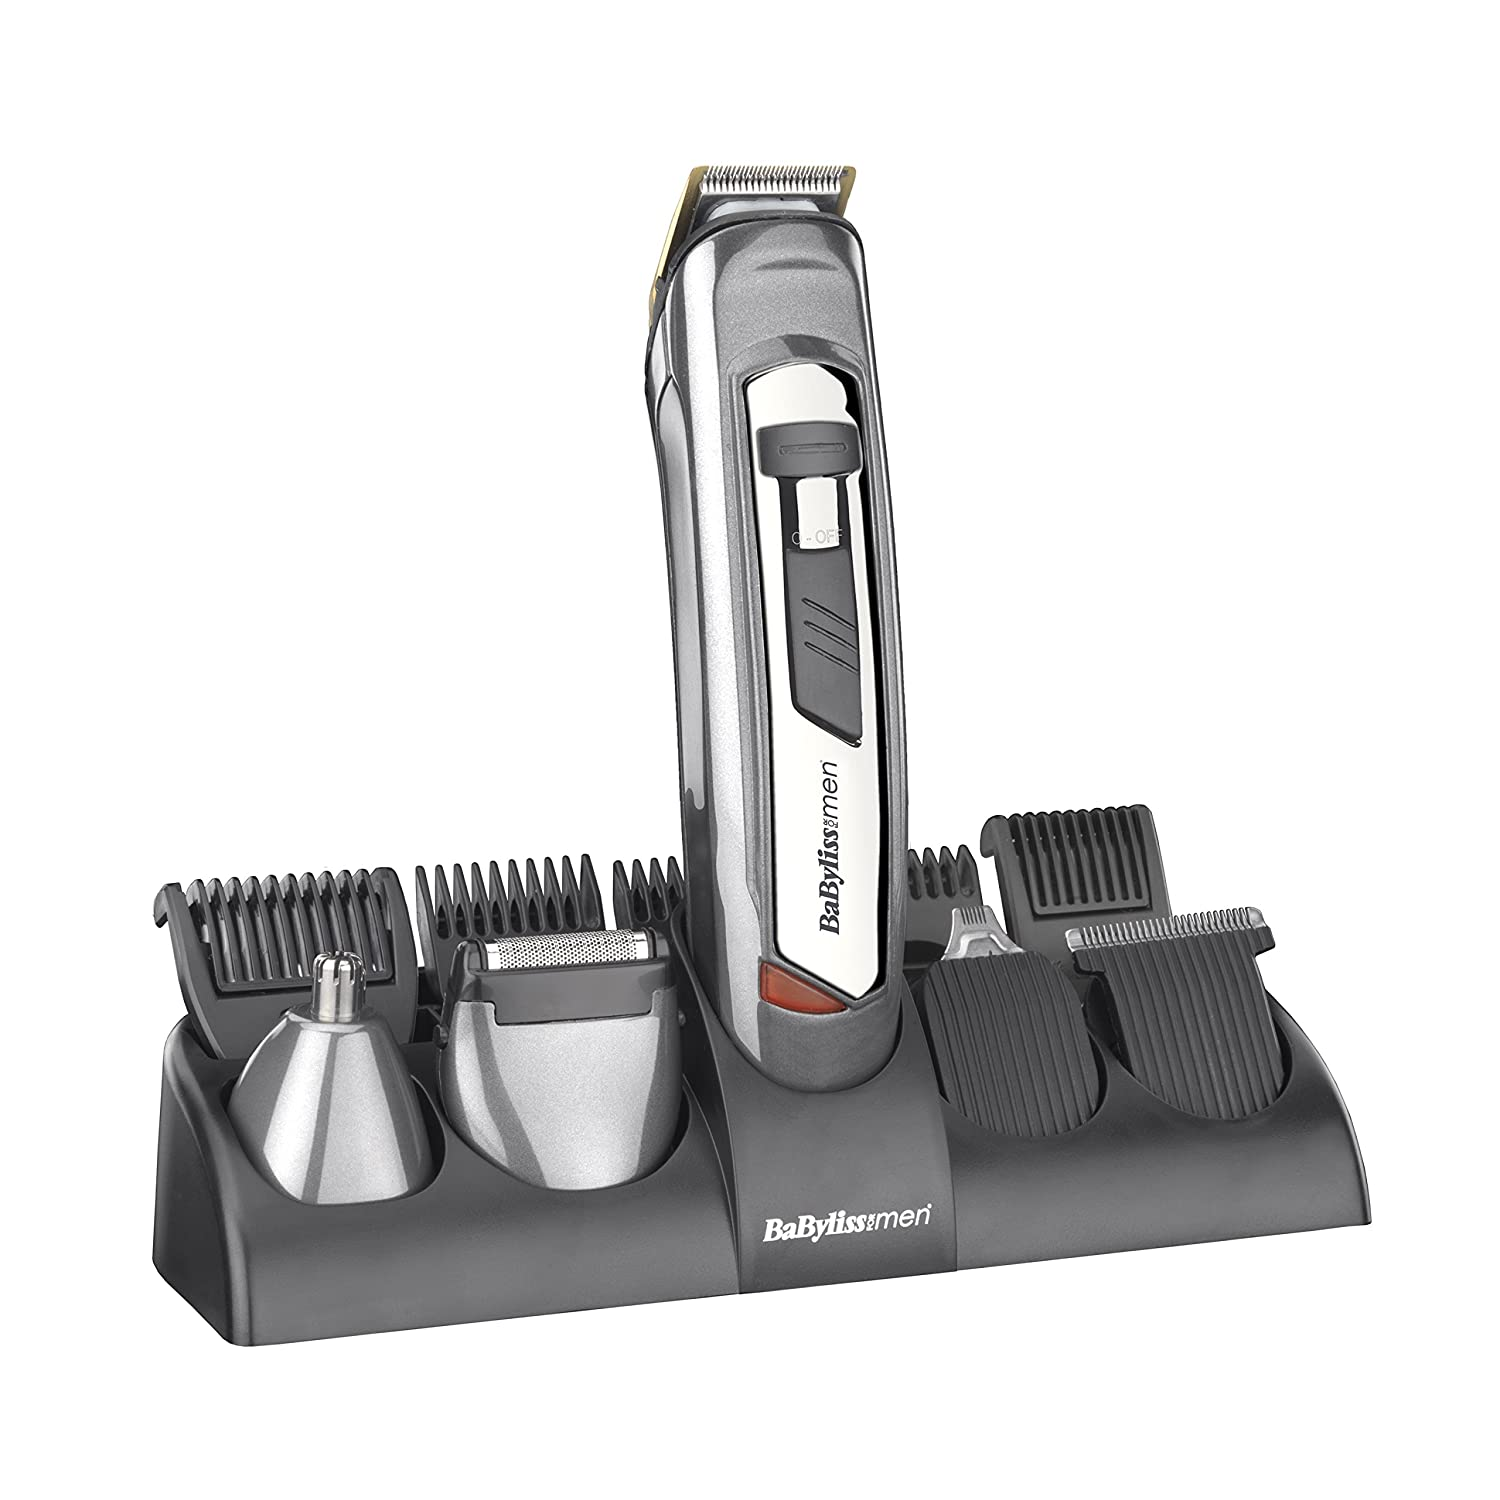 BaByliss 7235U 10-in-1 Grooming System for Men The Conair Group Ltd